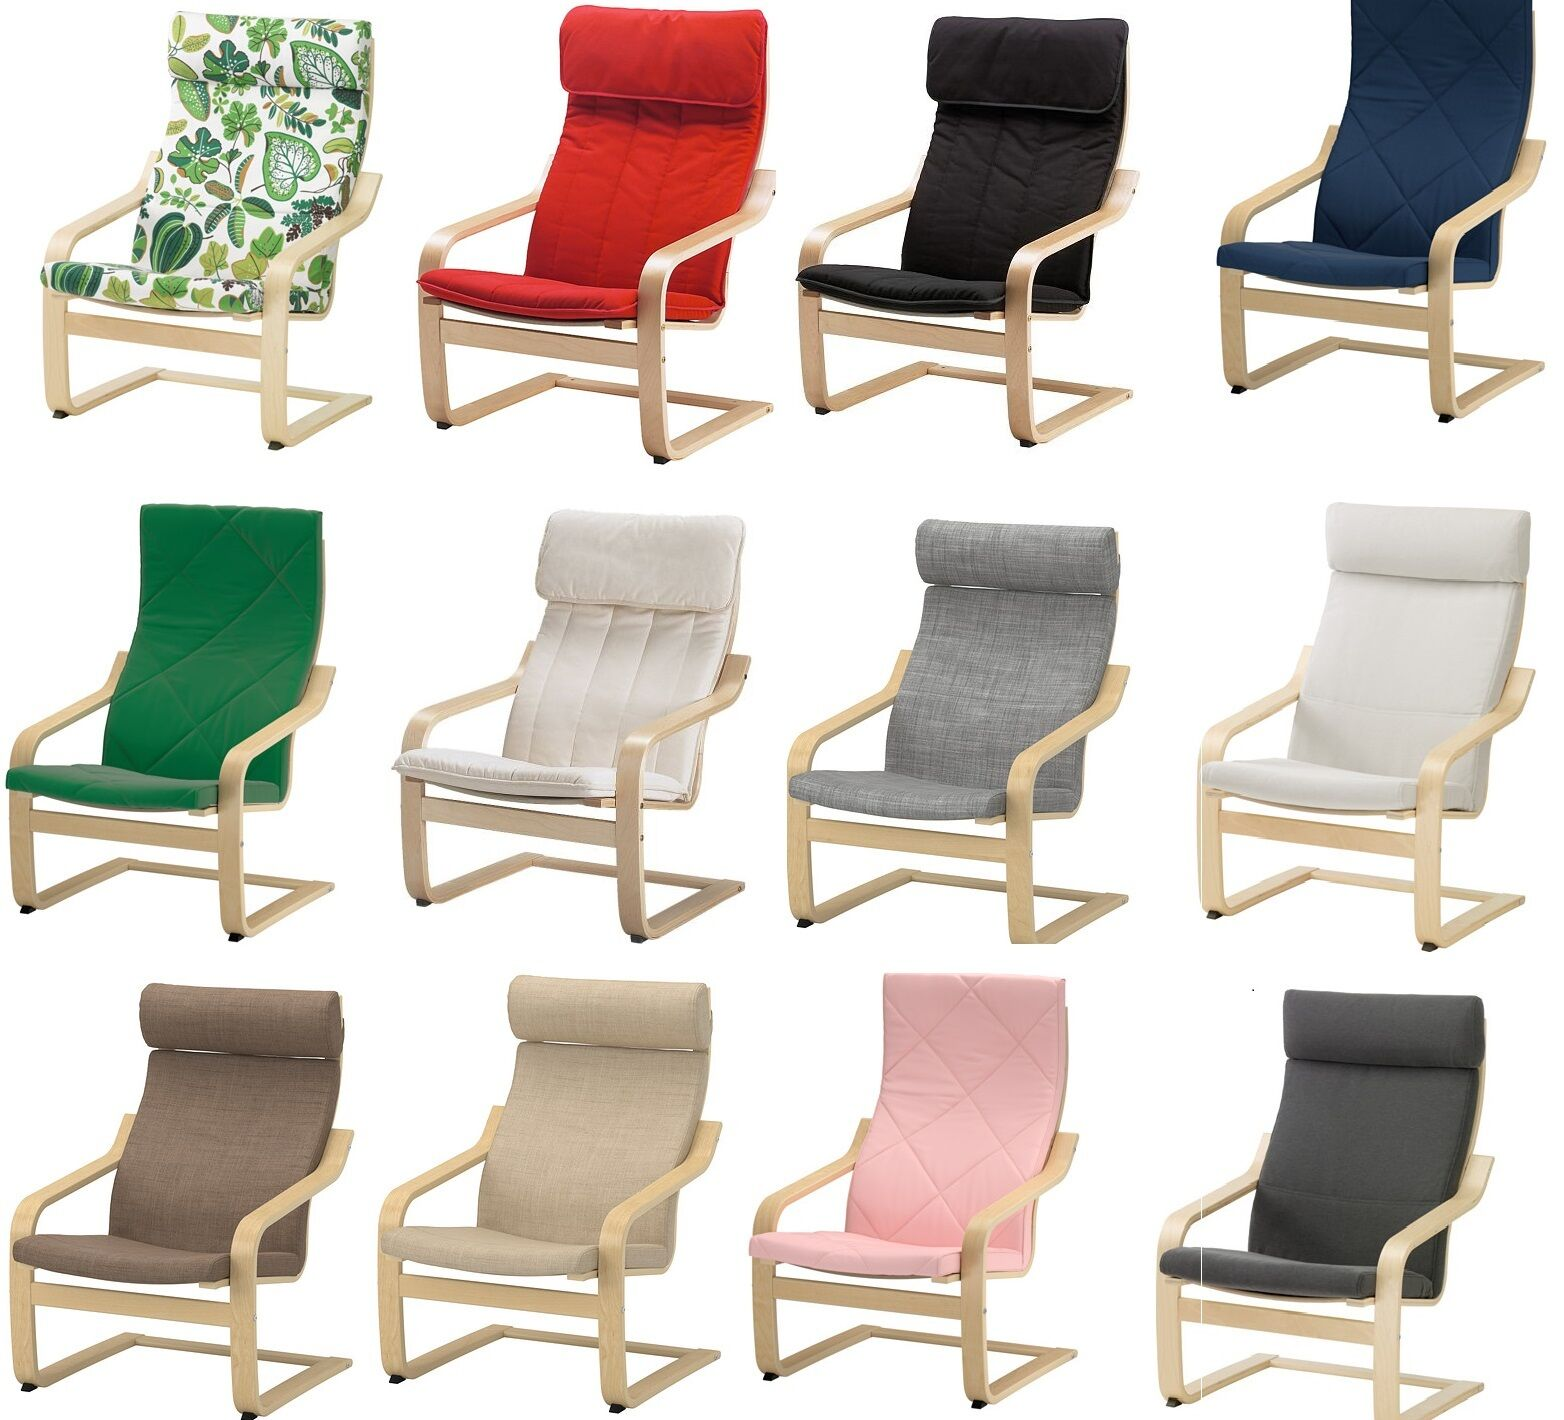 IKEA POANG Armchair Slipcover Replacement Cushion /& Slip Cover,22 Colours,New